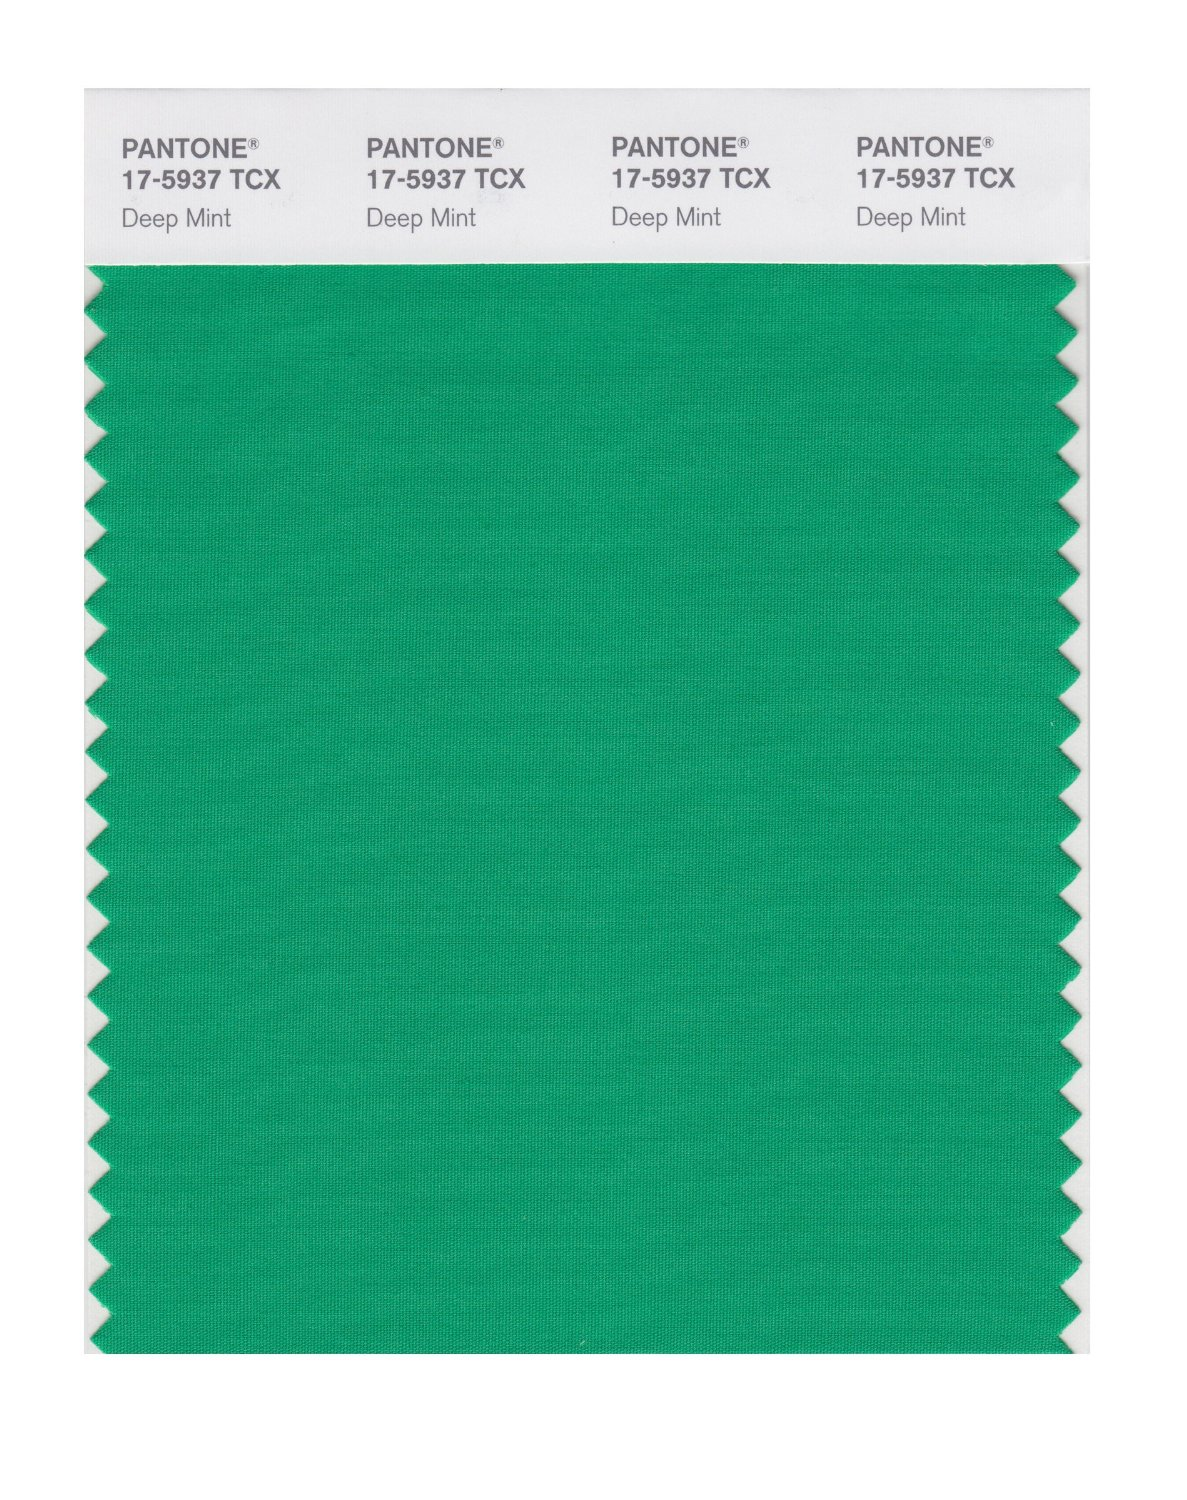 Pantone Smart Swatch 17-5937 Deep Mint